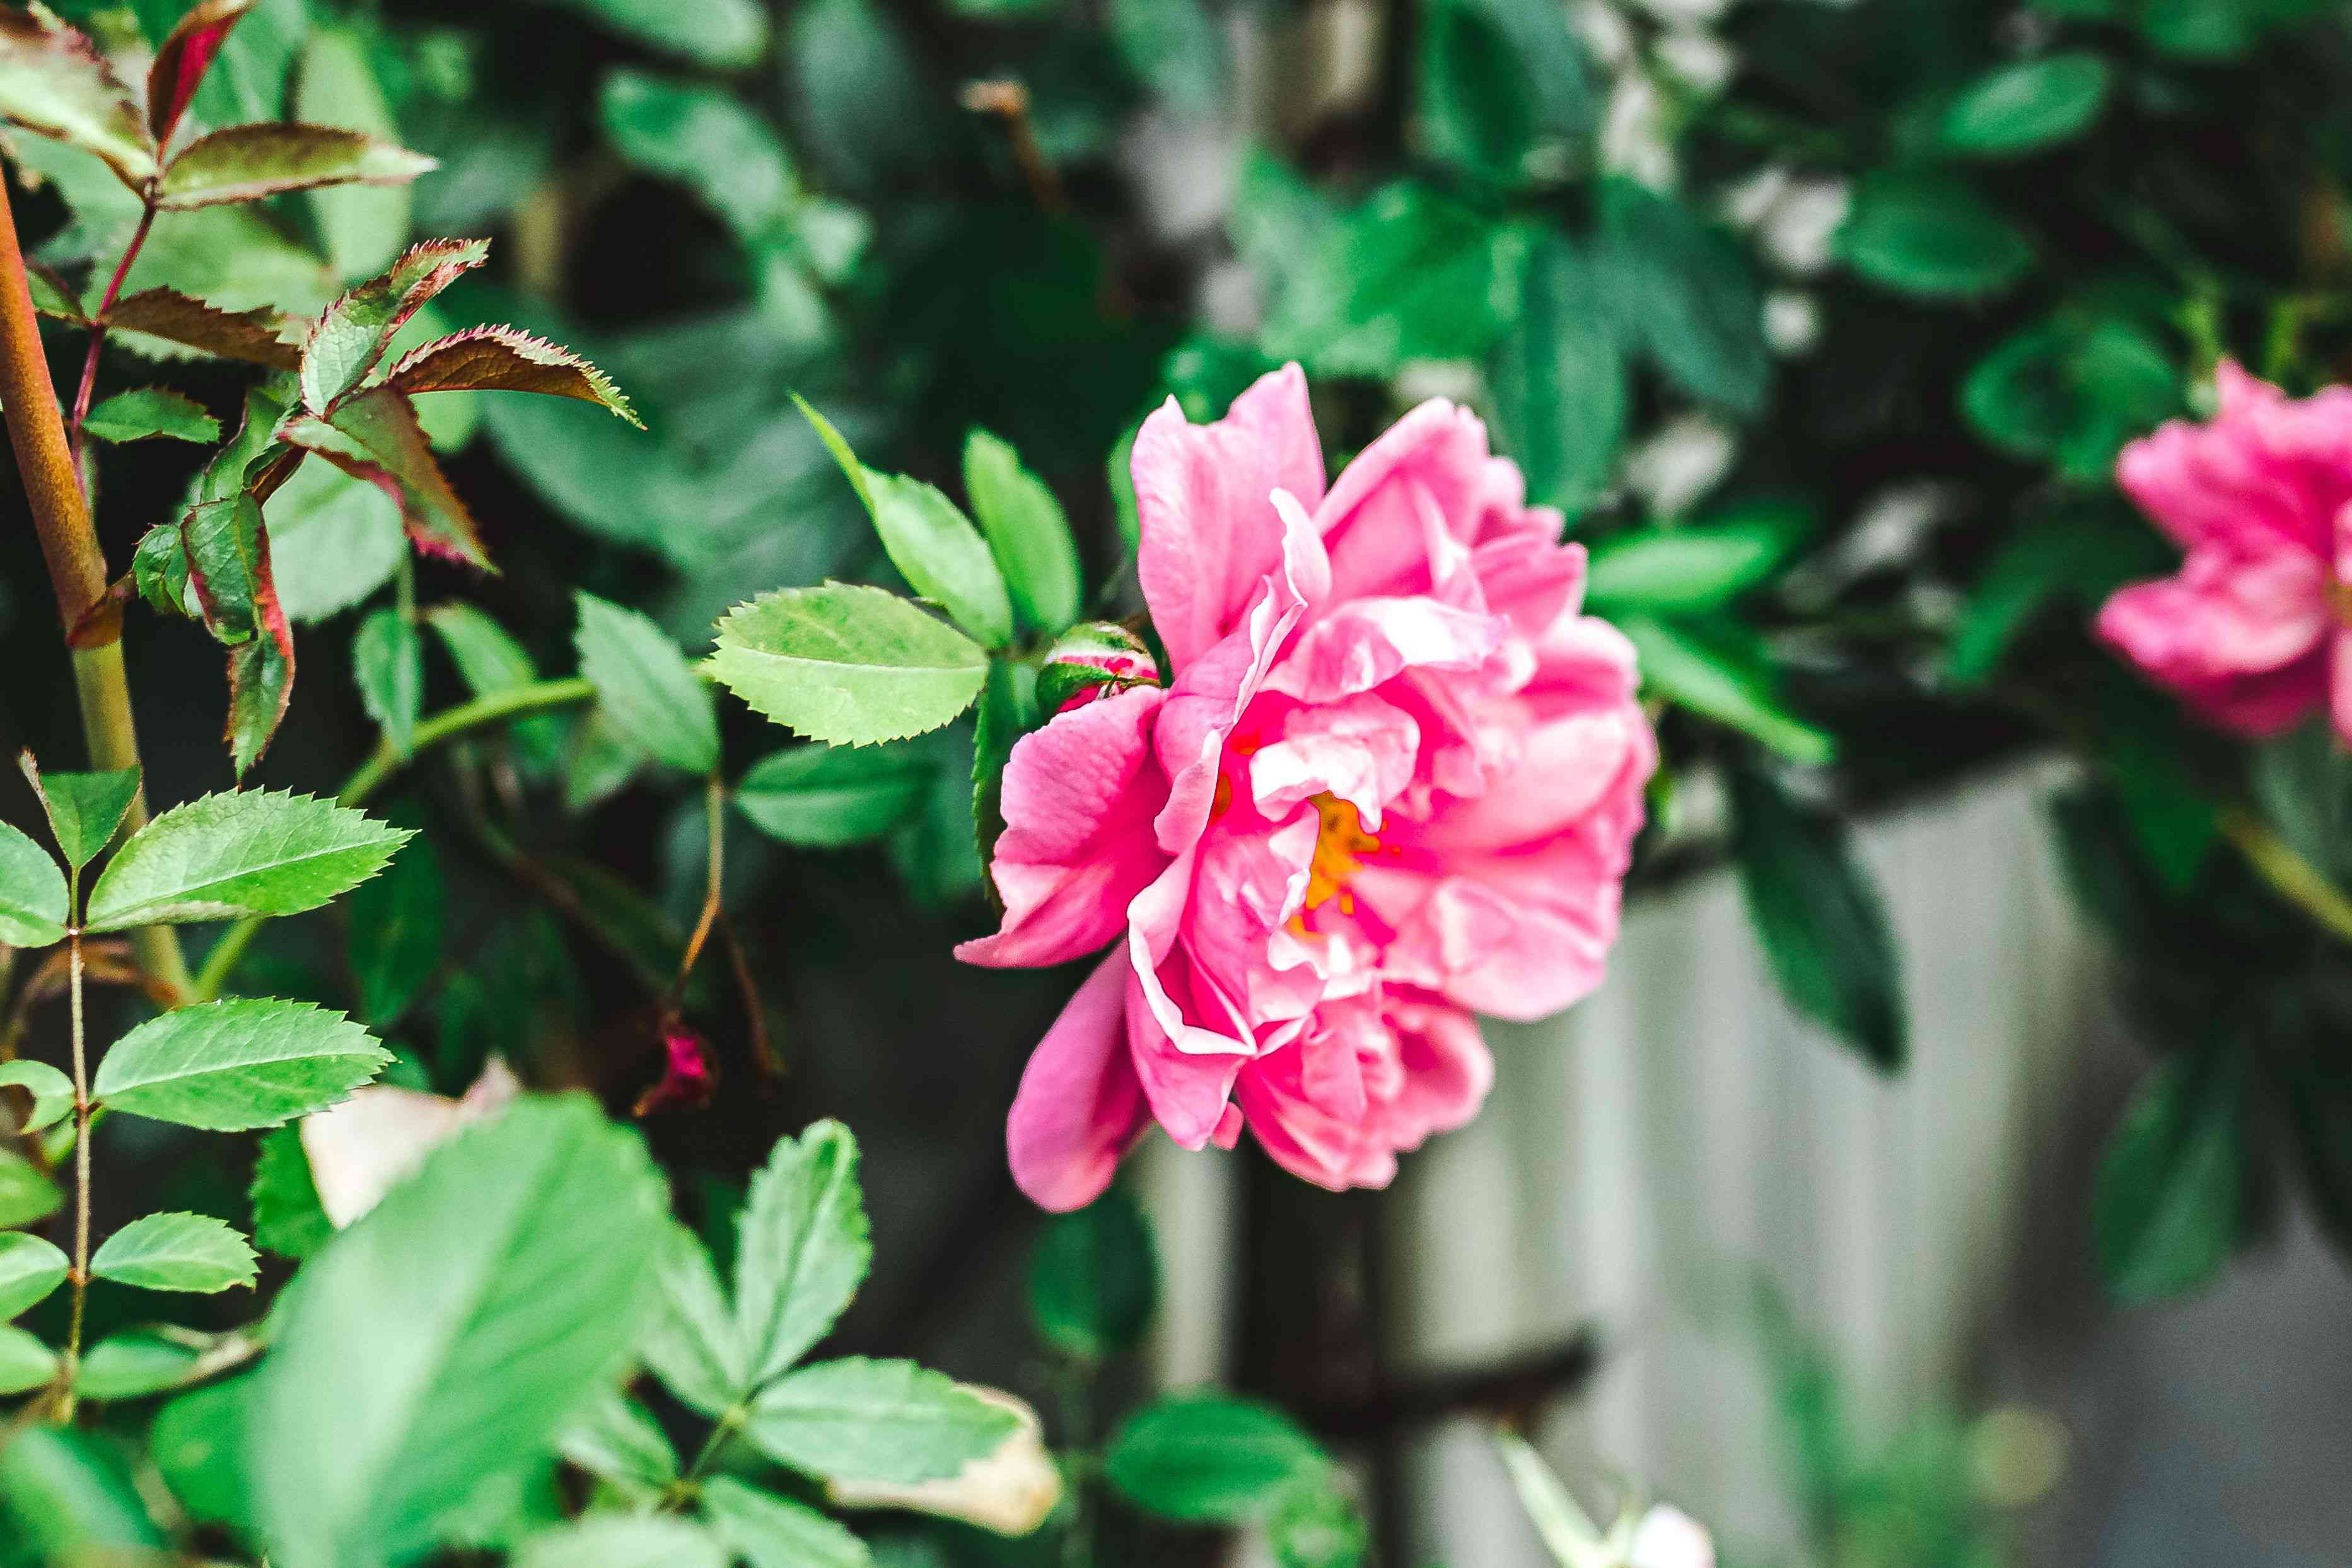 Rugosa rose shrub with large pink rose with ruffled petals on edge of branch